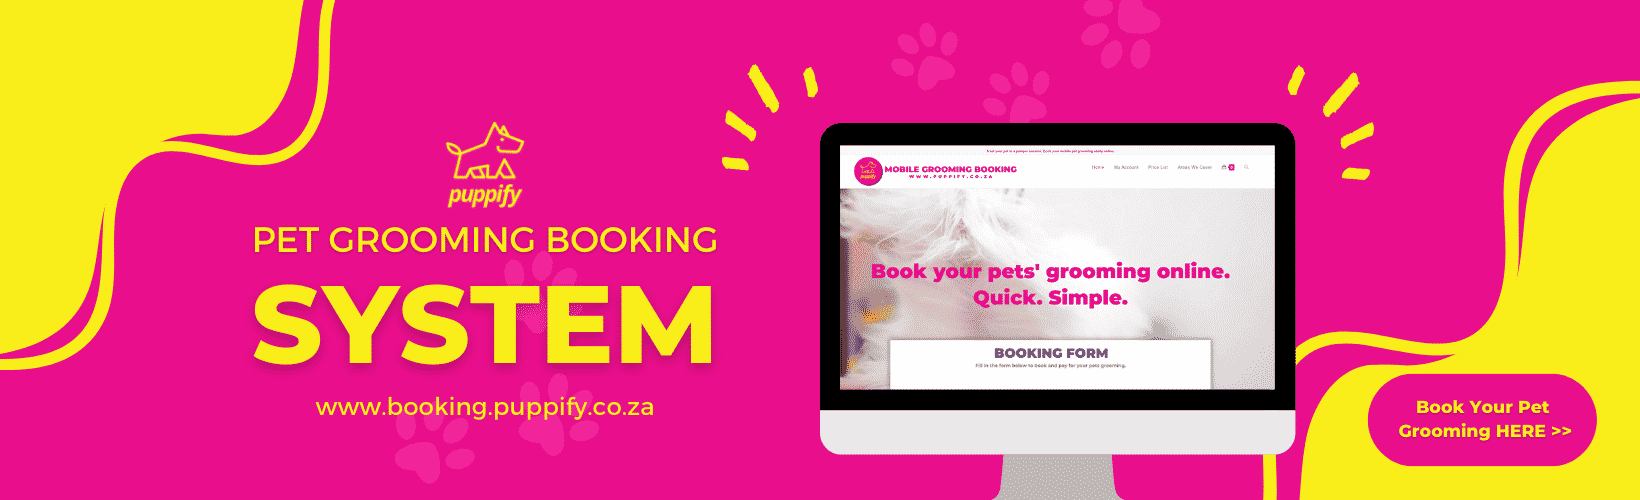 dog grooming and cat grooming online booking system